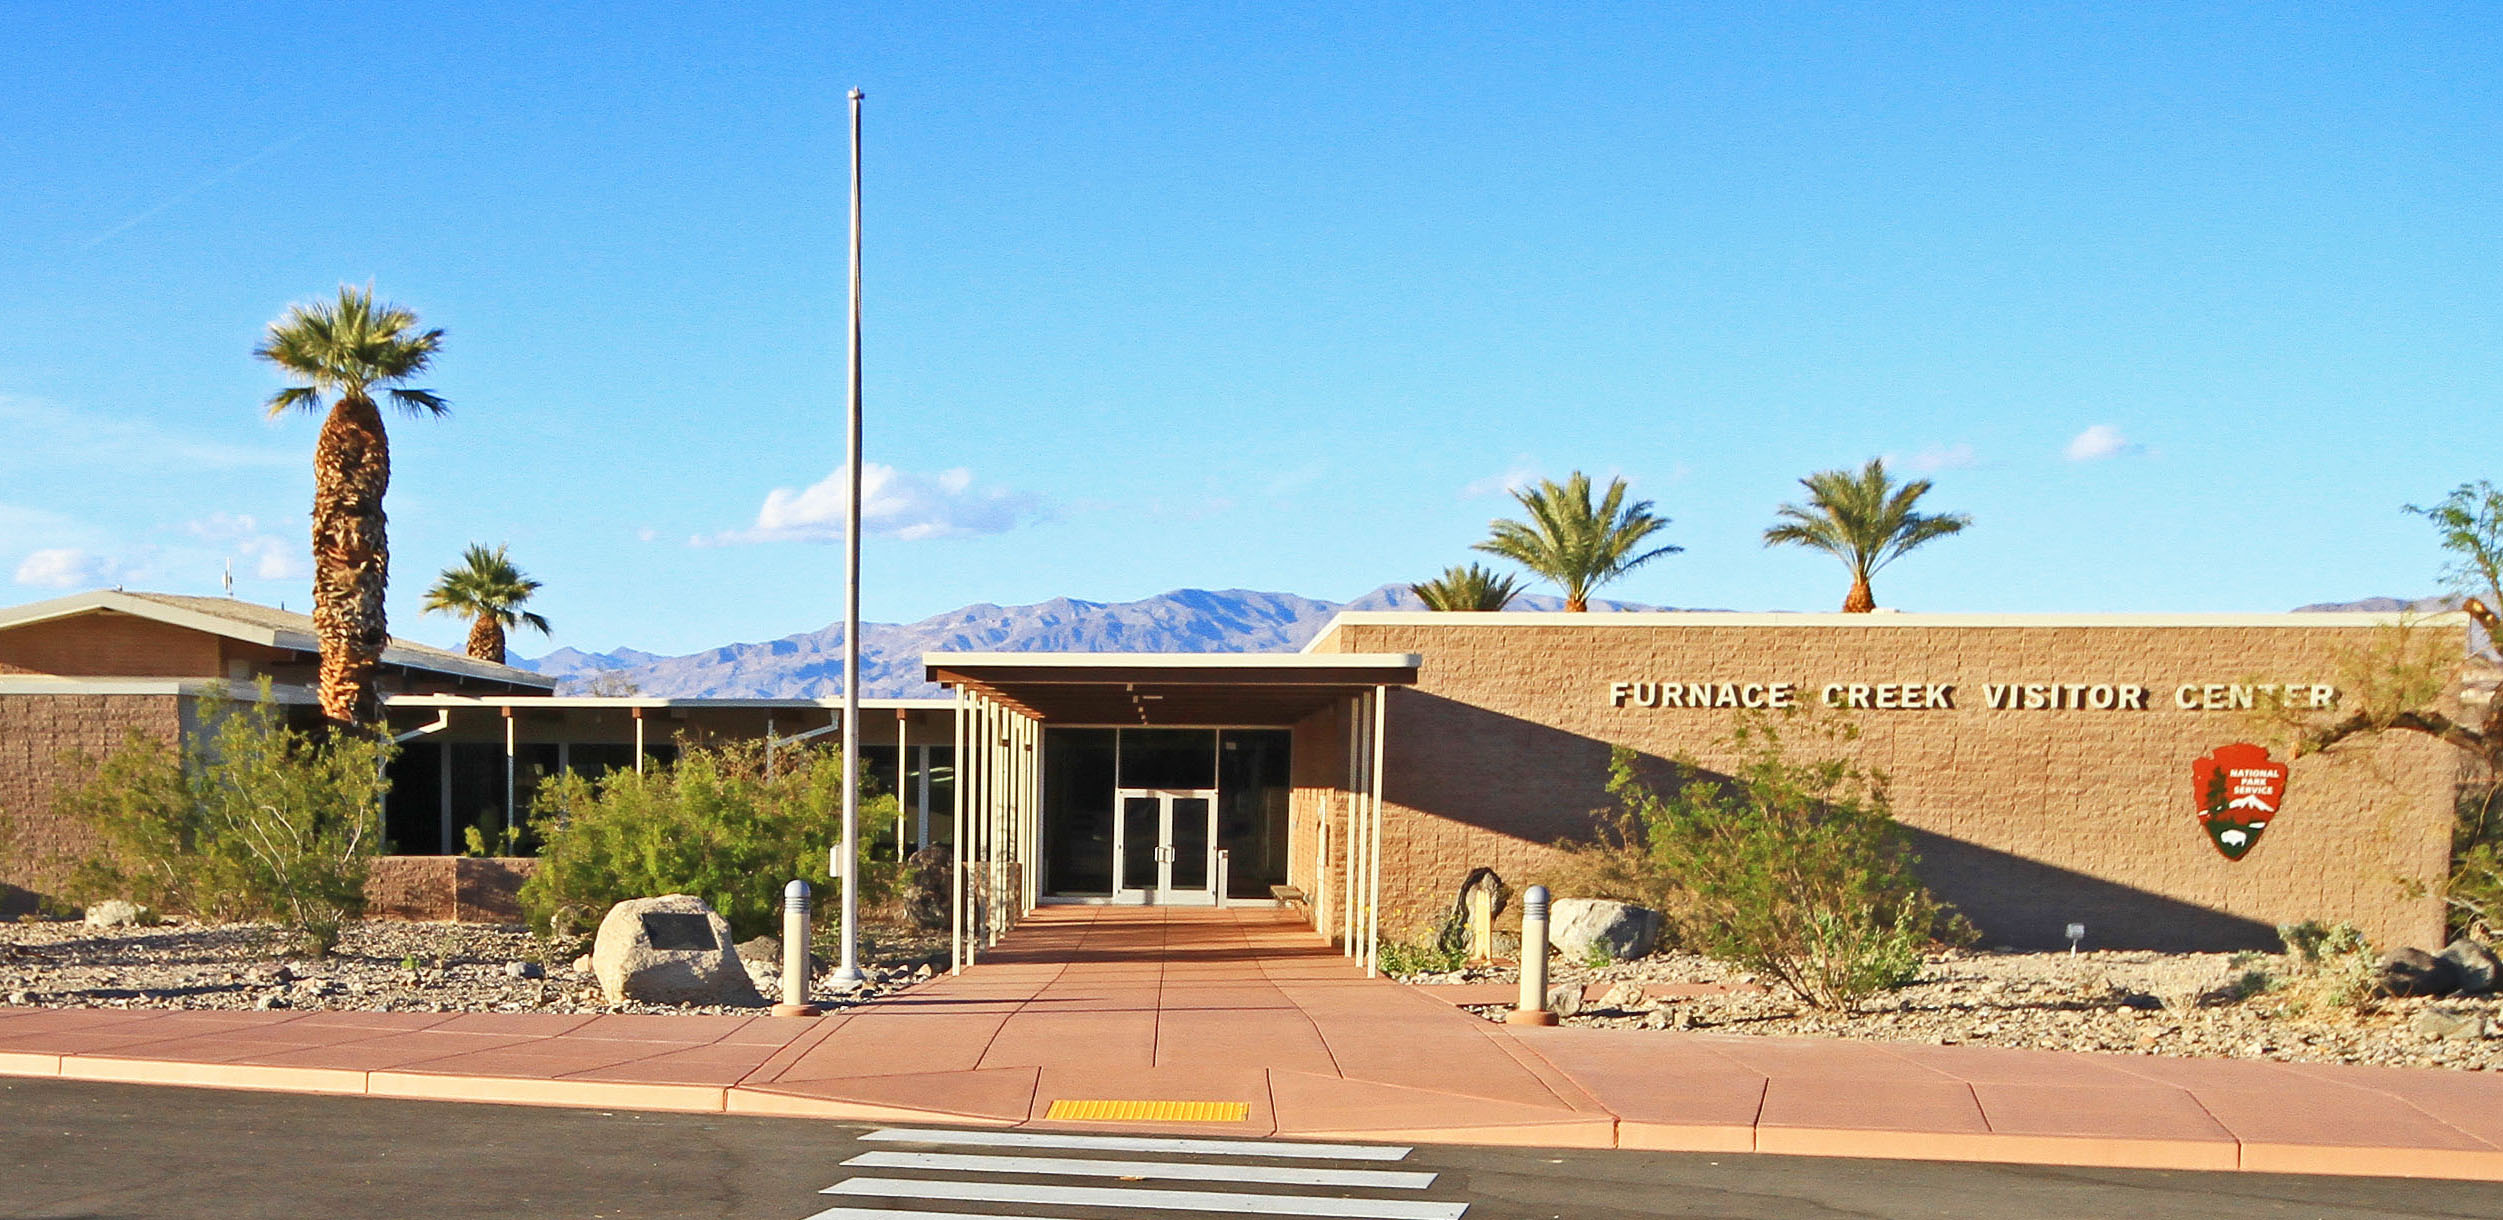 Furnace Creek Visitor Center, Death Valley NP